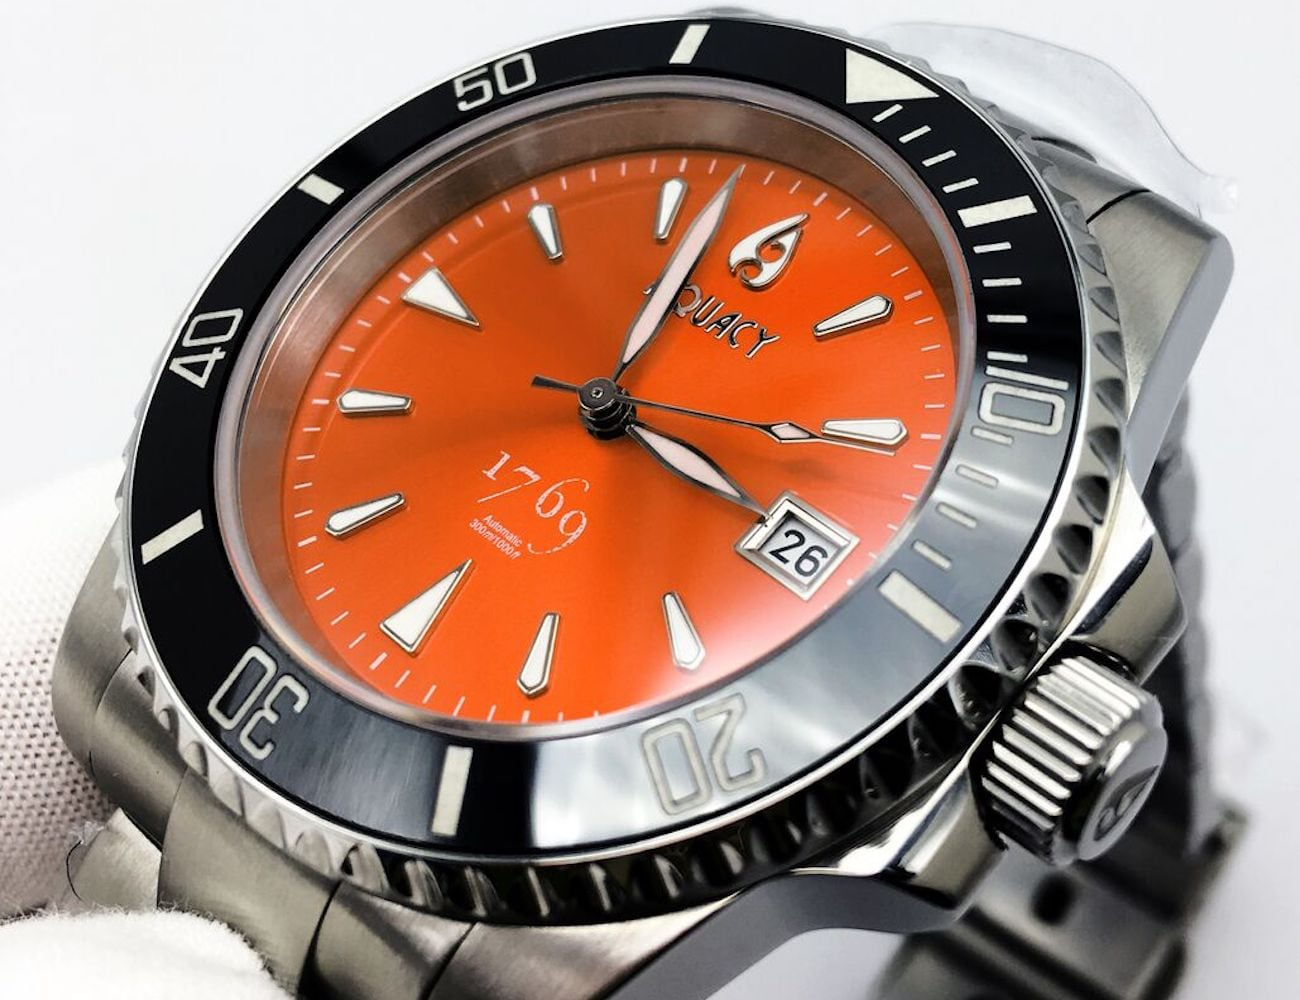 Aquacy 1769 Limited Edition Dive Watch